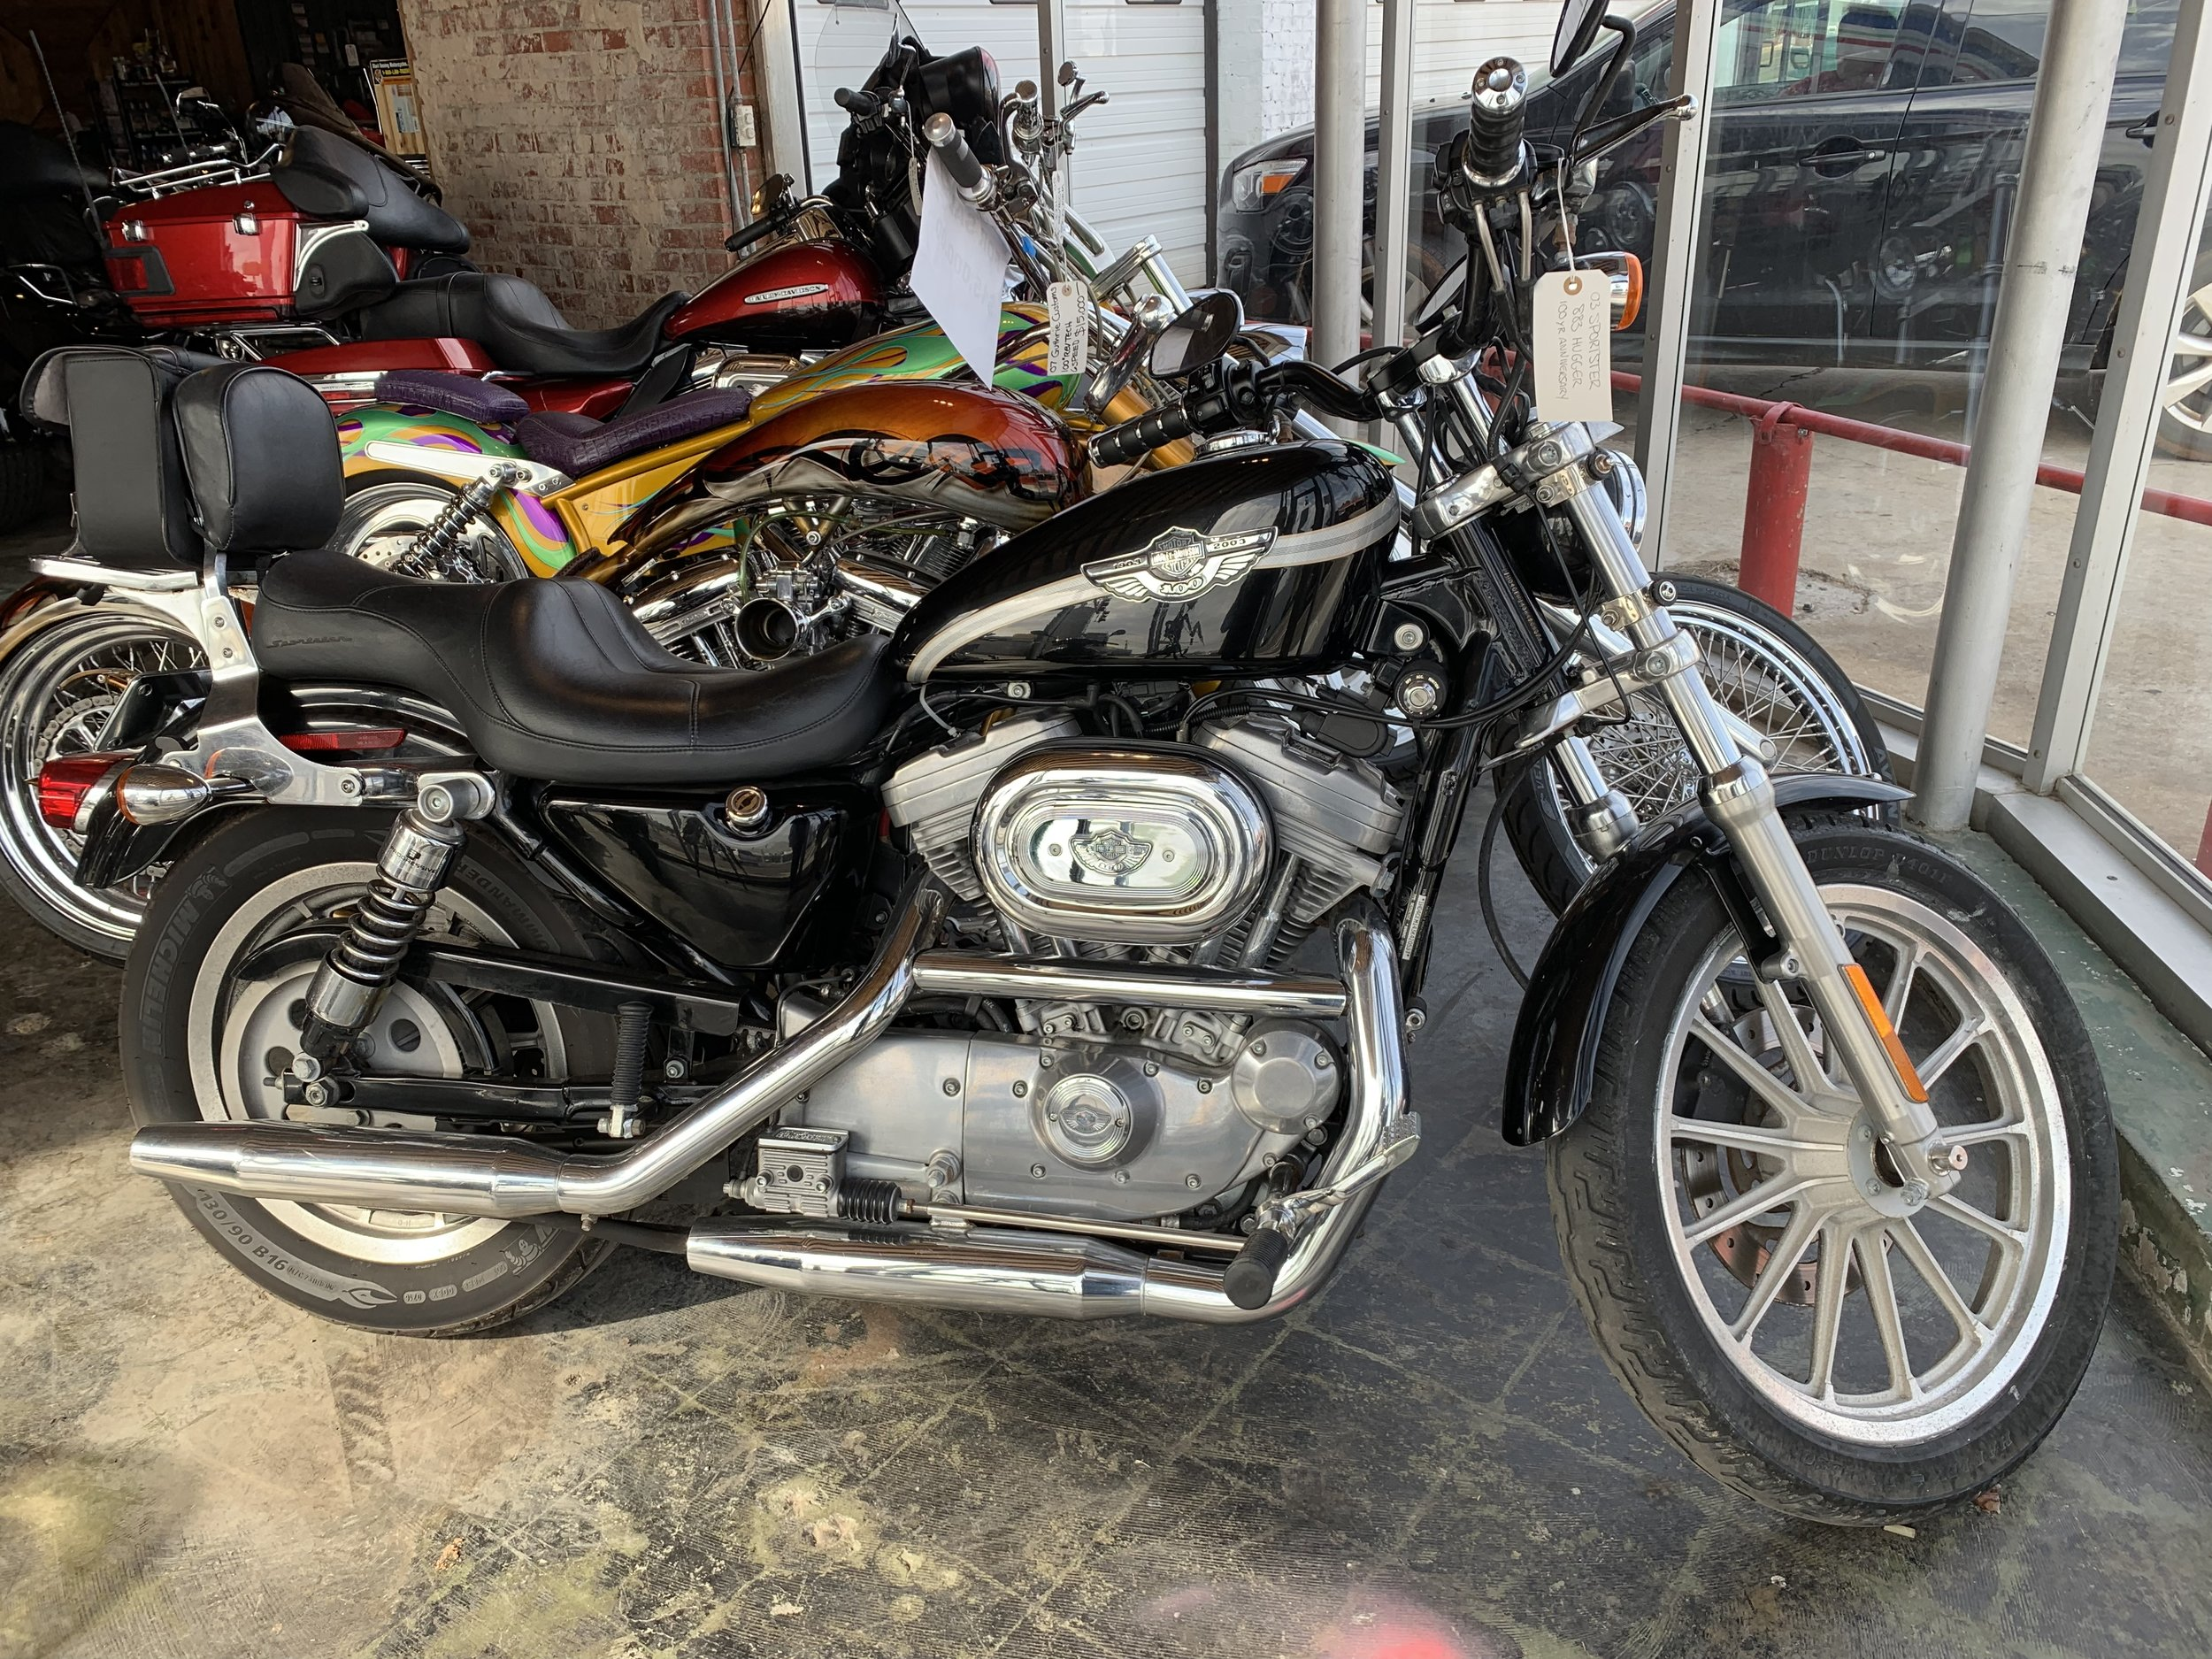 2003 883 Sportster $3,500 10,451 miles  NEW LOWER PRICE $3,000